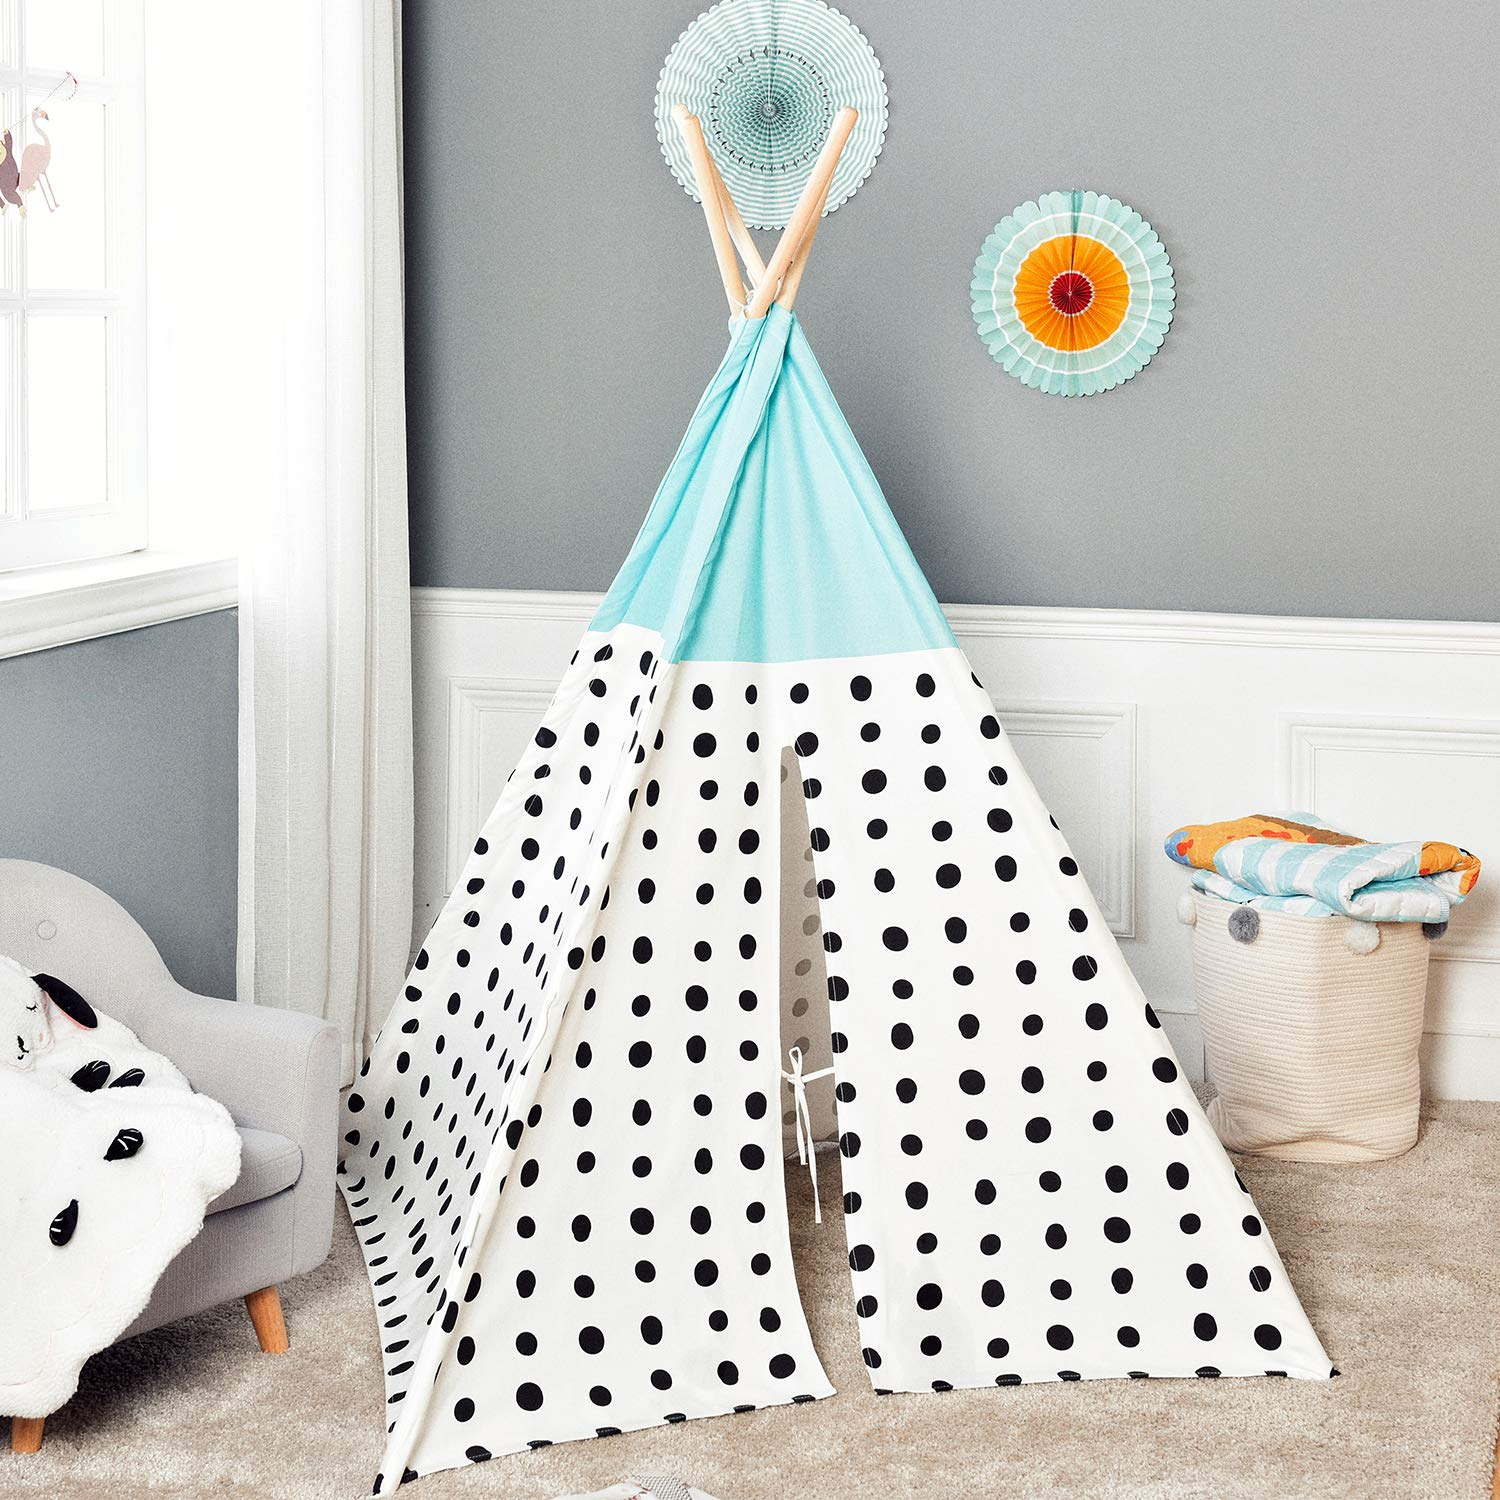 Asweets Teepee Tent for Kids Teepee Play Tent Mat for Boys Indoor Outdoor Play House Tent Indian Canvas Tipi Tent Blue Top Black Point by Asweets (Image #5)